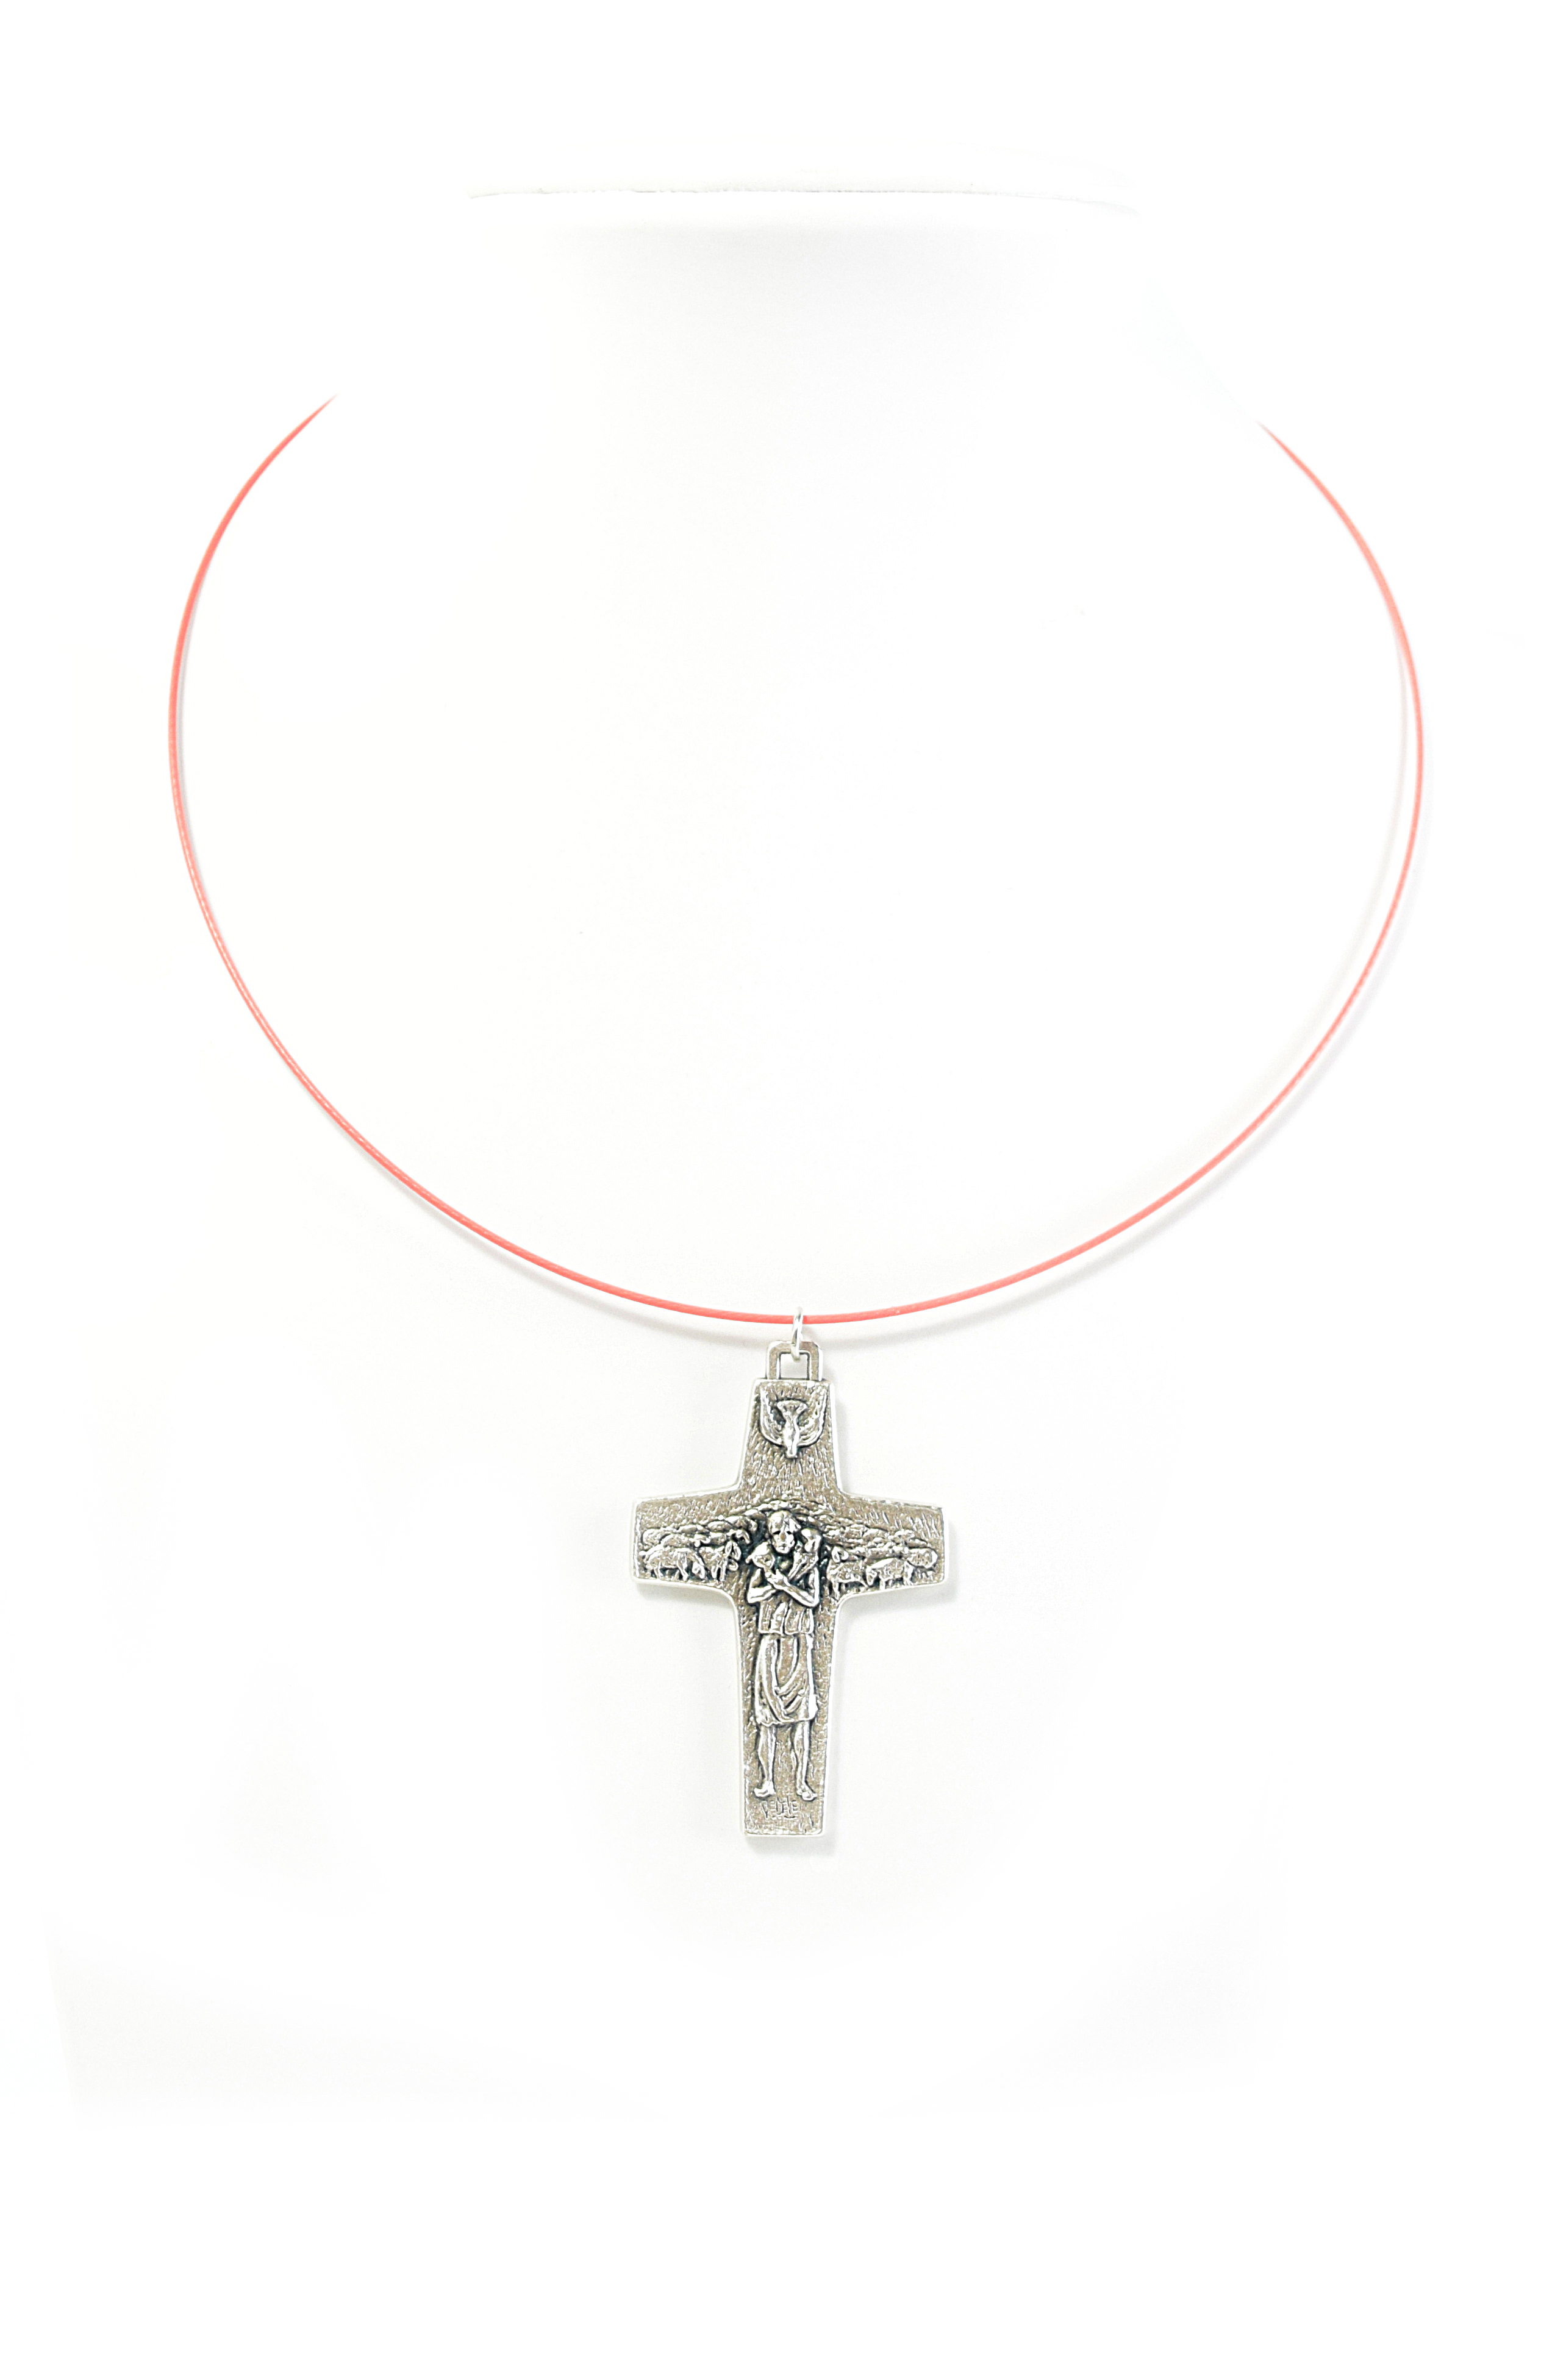 Rigid necklace with Cross Good Shepherd